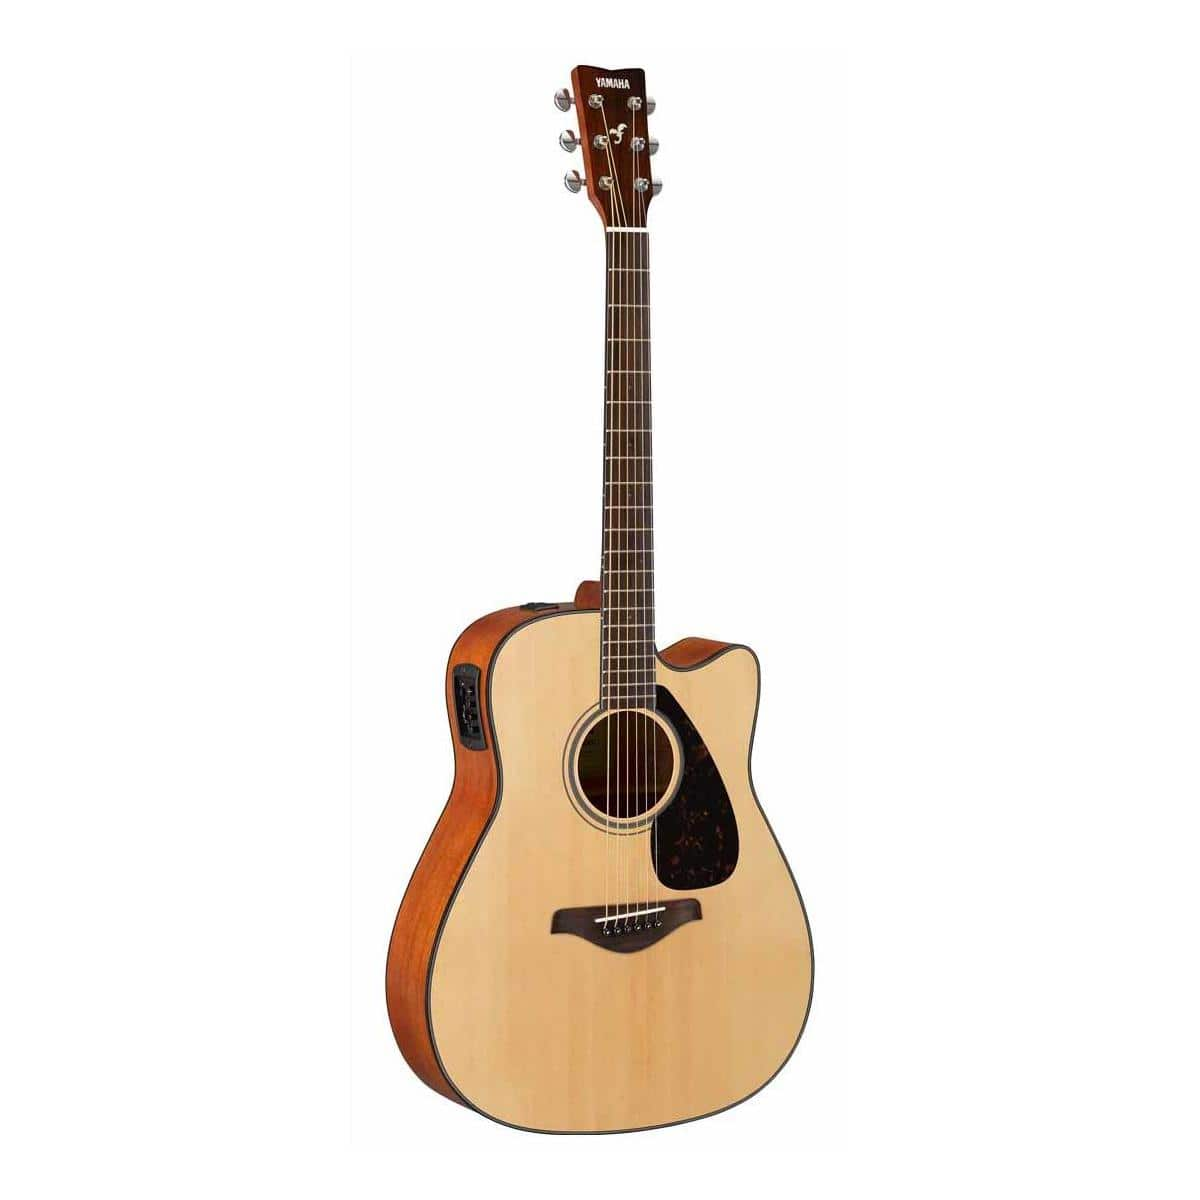 Yamaha FGX800C Traditional Western Cutaway Acoustic/Electric Guitar (Natural) $219.99 + Free Shipping *Back & Cheaper*